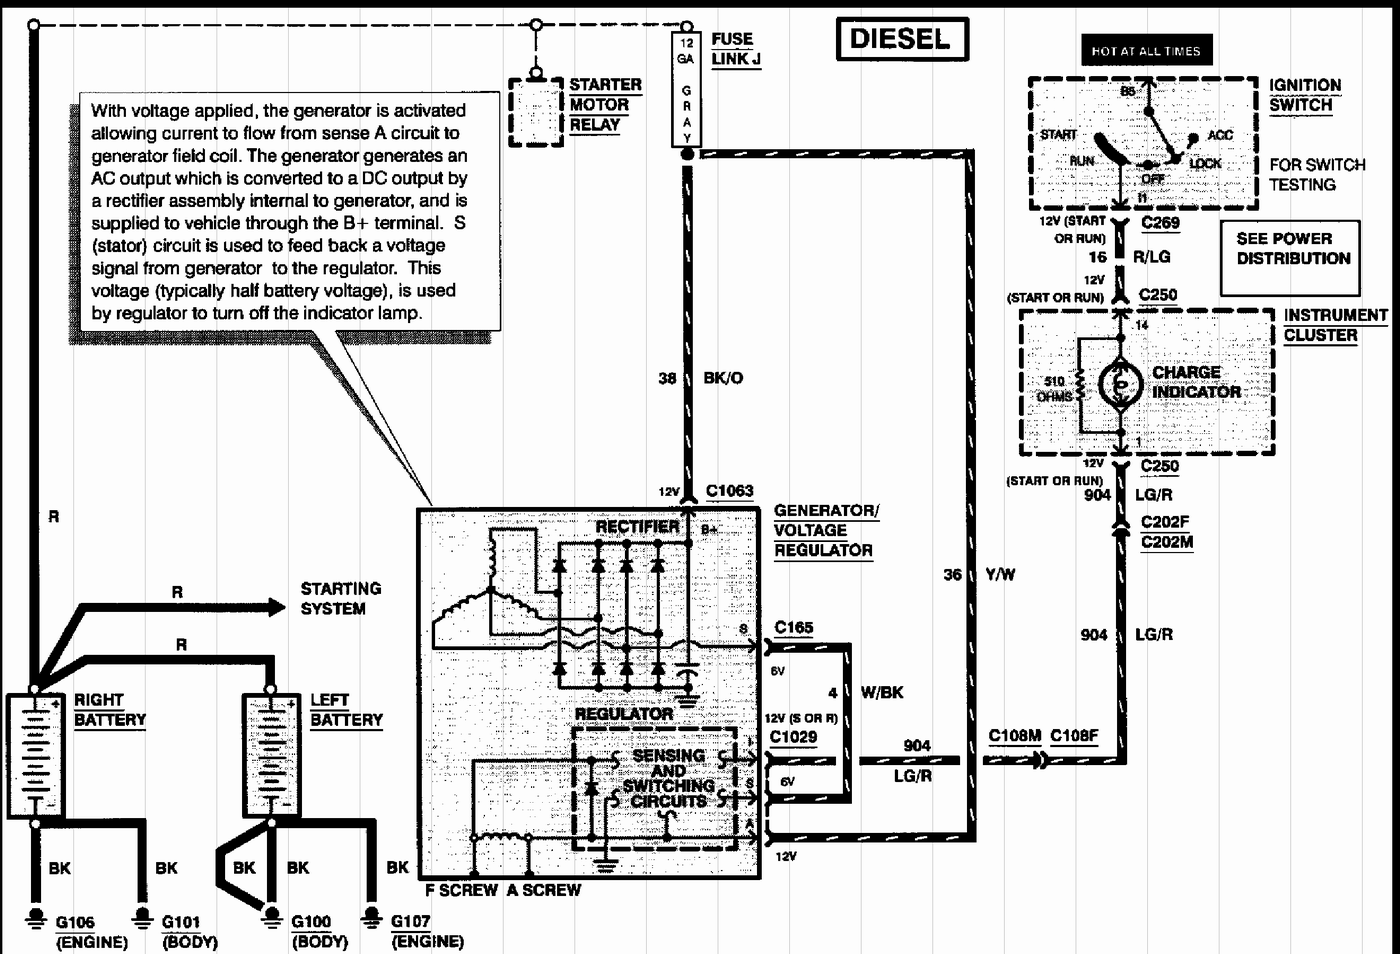 wiring diagram for a 1997 ford f 250 wiring diagram list wiring diagram for 1997 ford f150 wiring diagram for 1997 ford f250 [ 1400 x 954 Pixel ]